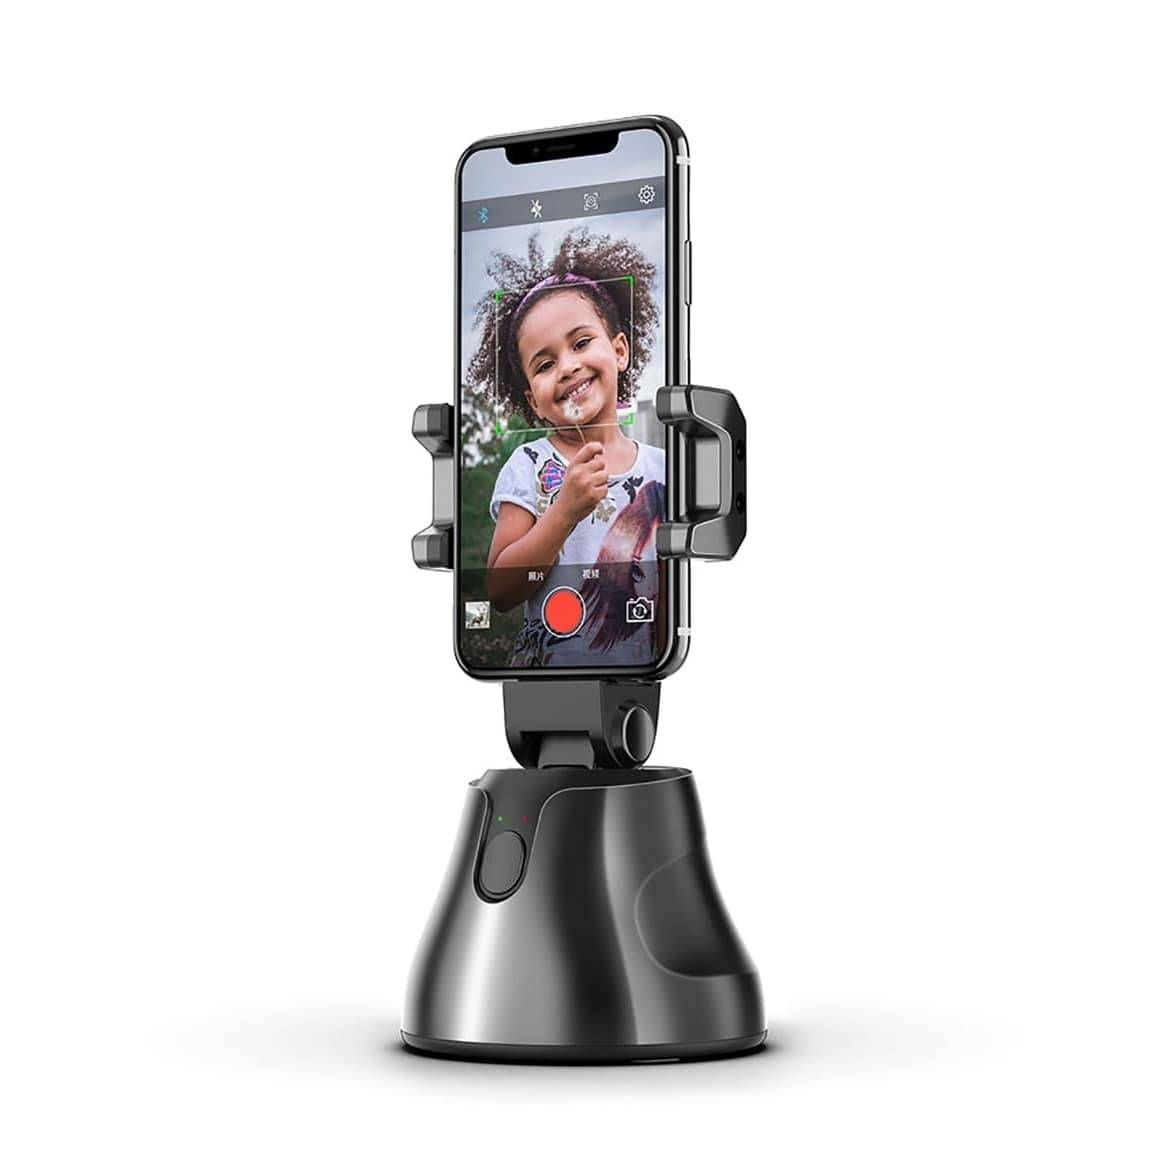 Robot Cameraman Mobile Phone Holders & Stands Mobile Phones & Accessories